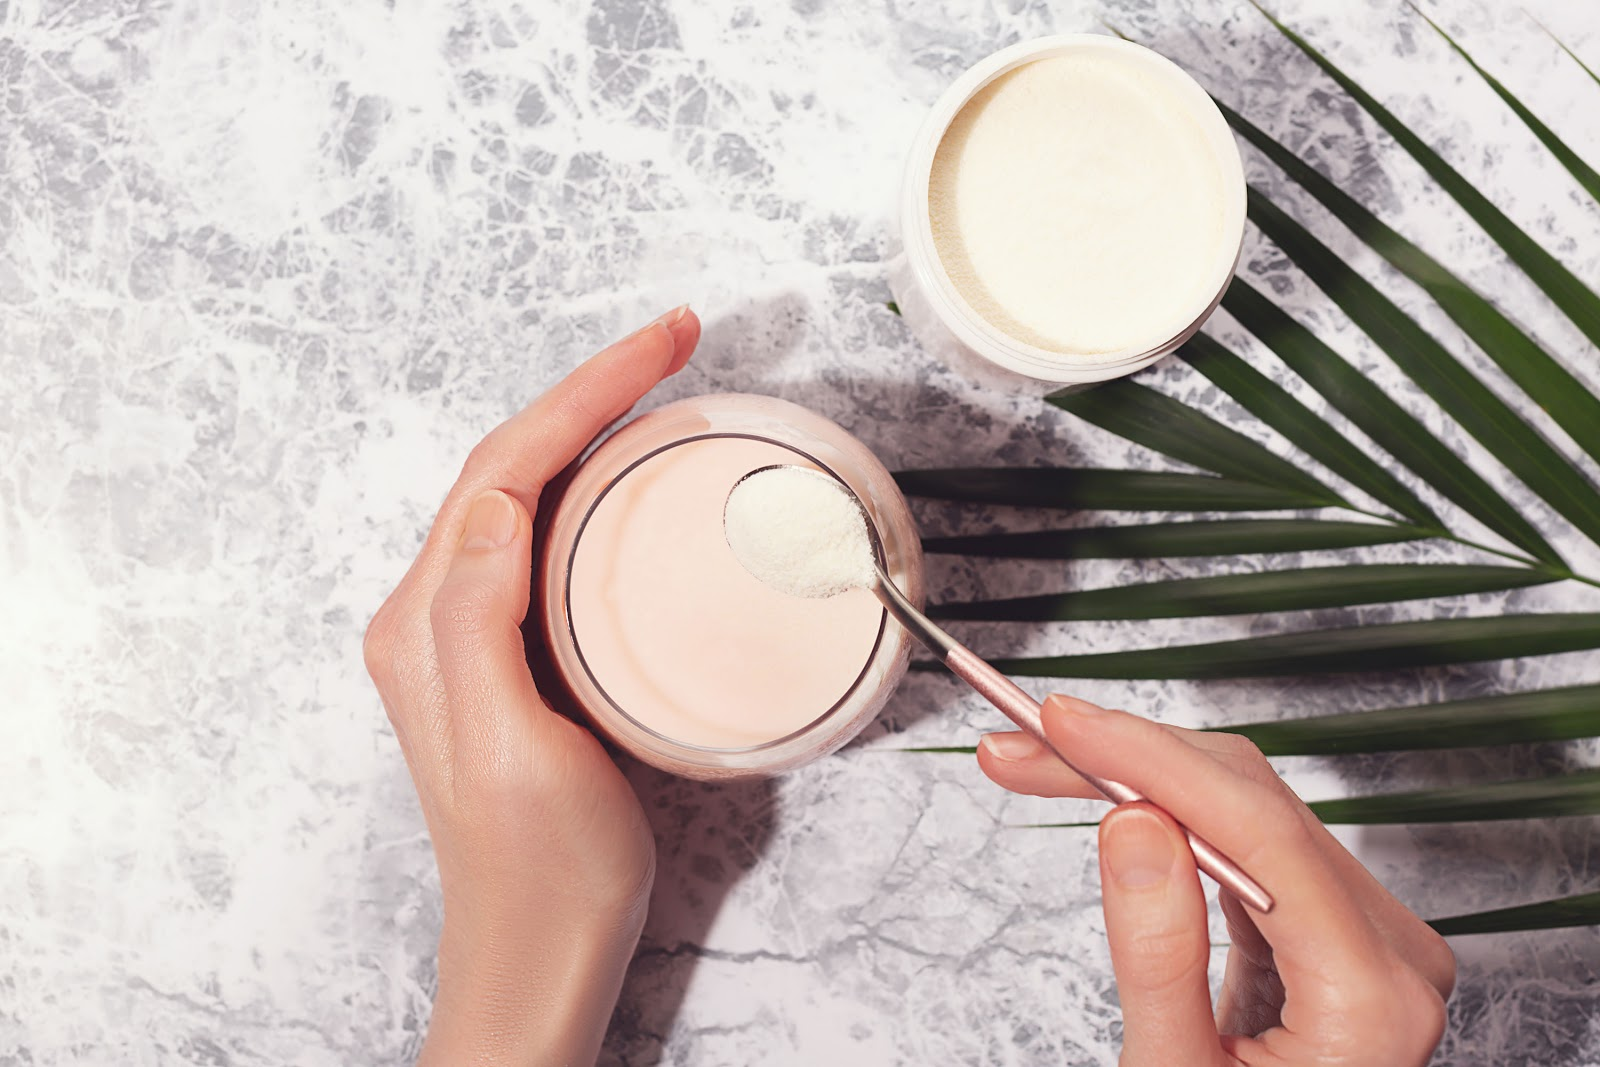 Protein powder can be among the foods with collagen